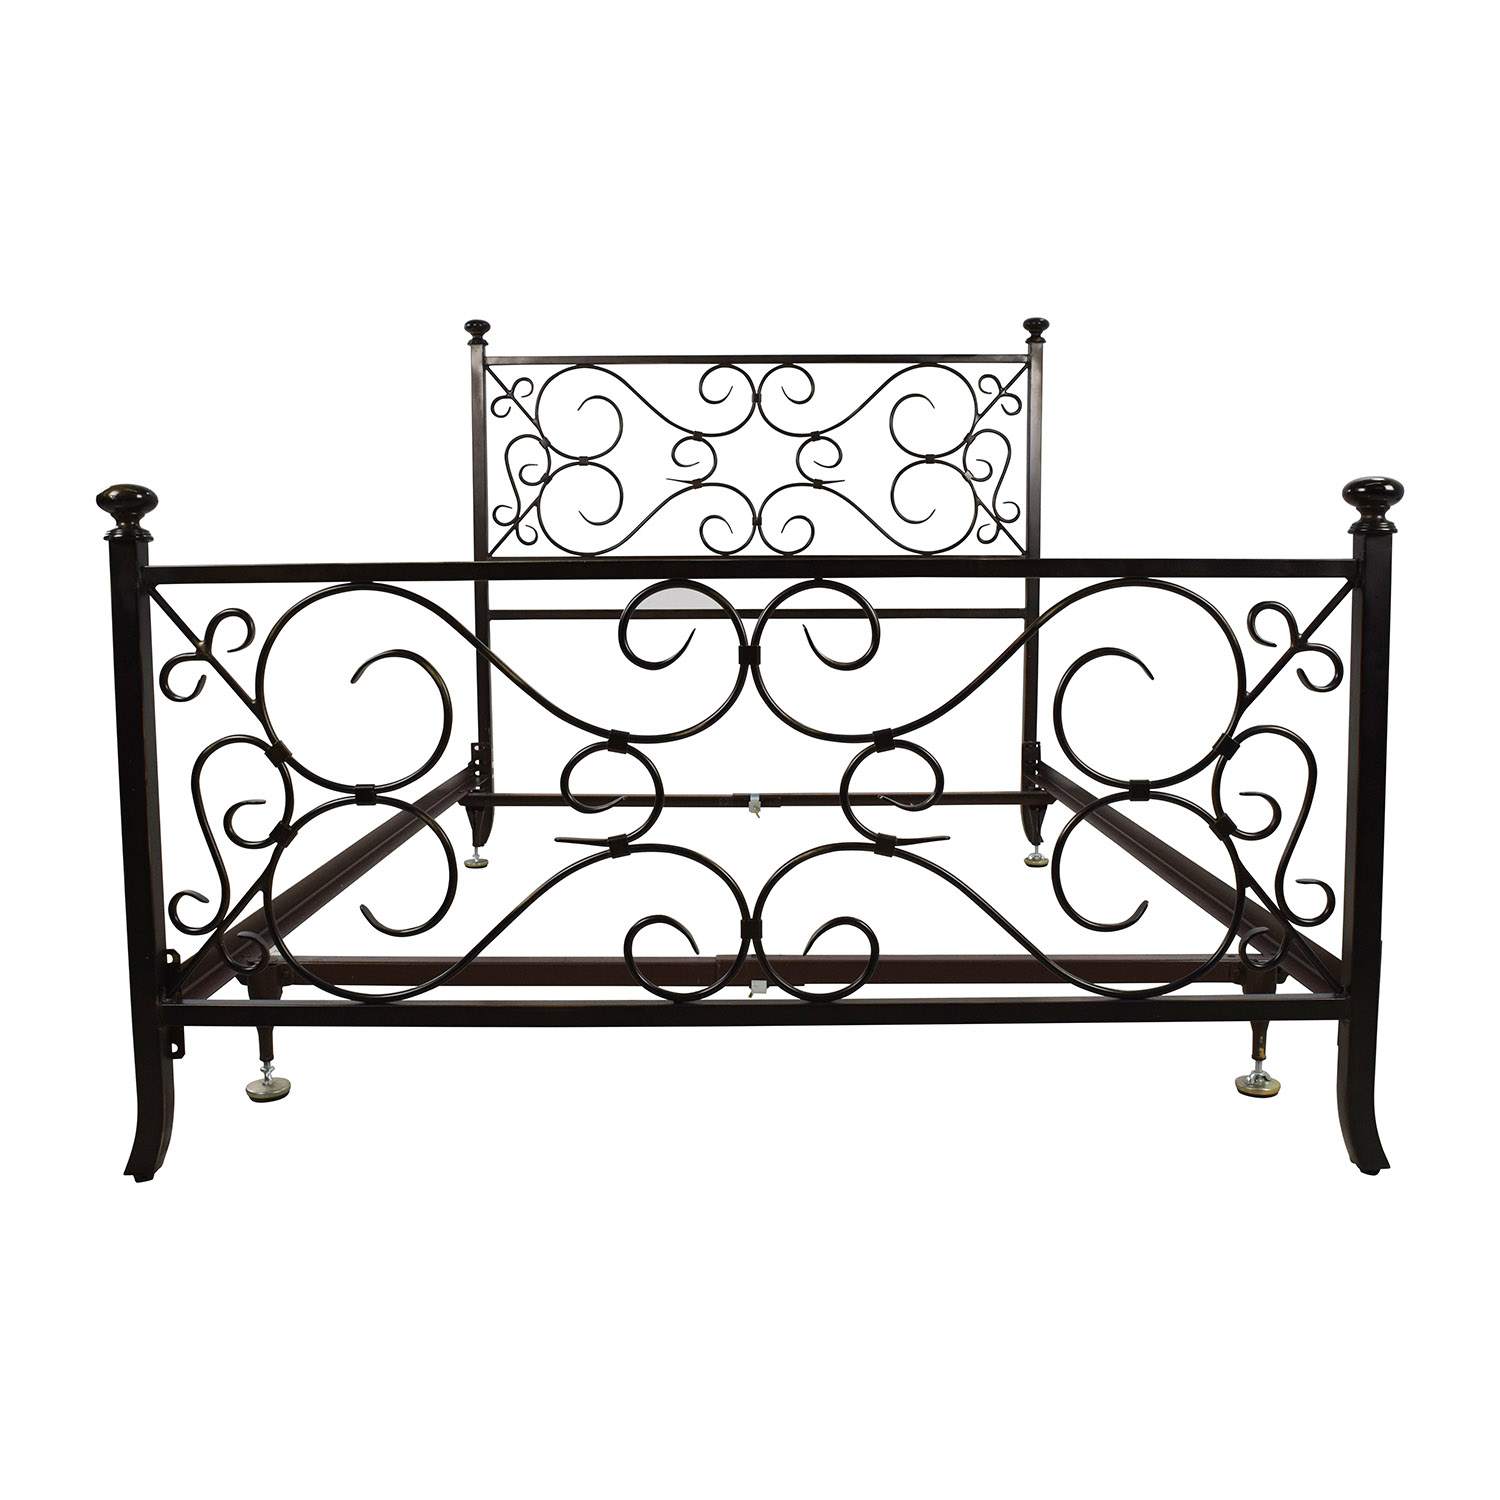 black scrolled metal bed frame for sale - Used Bed Frames